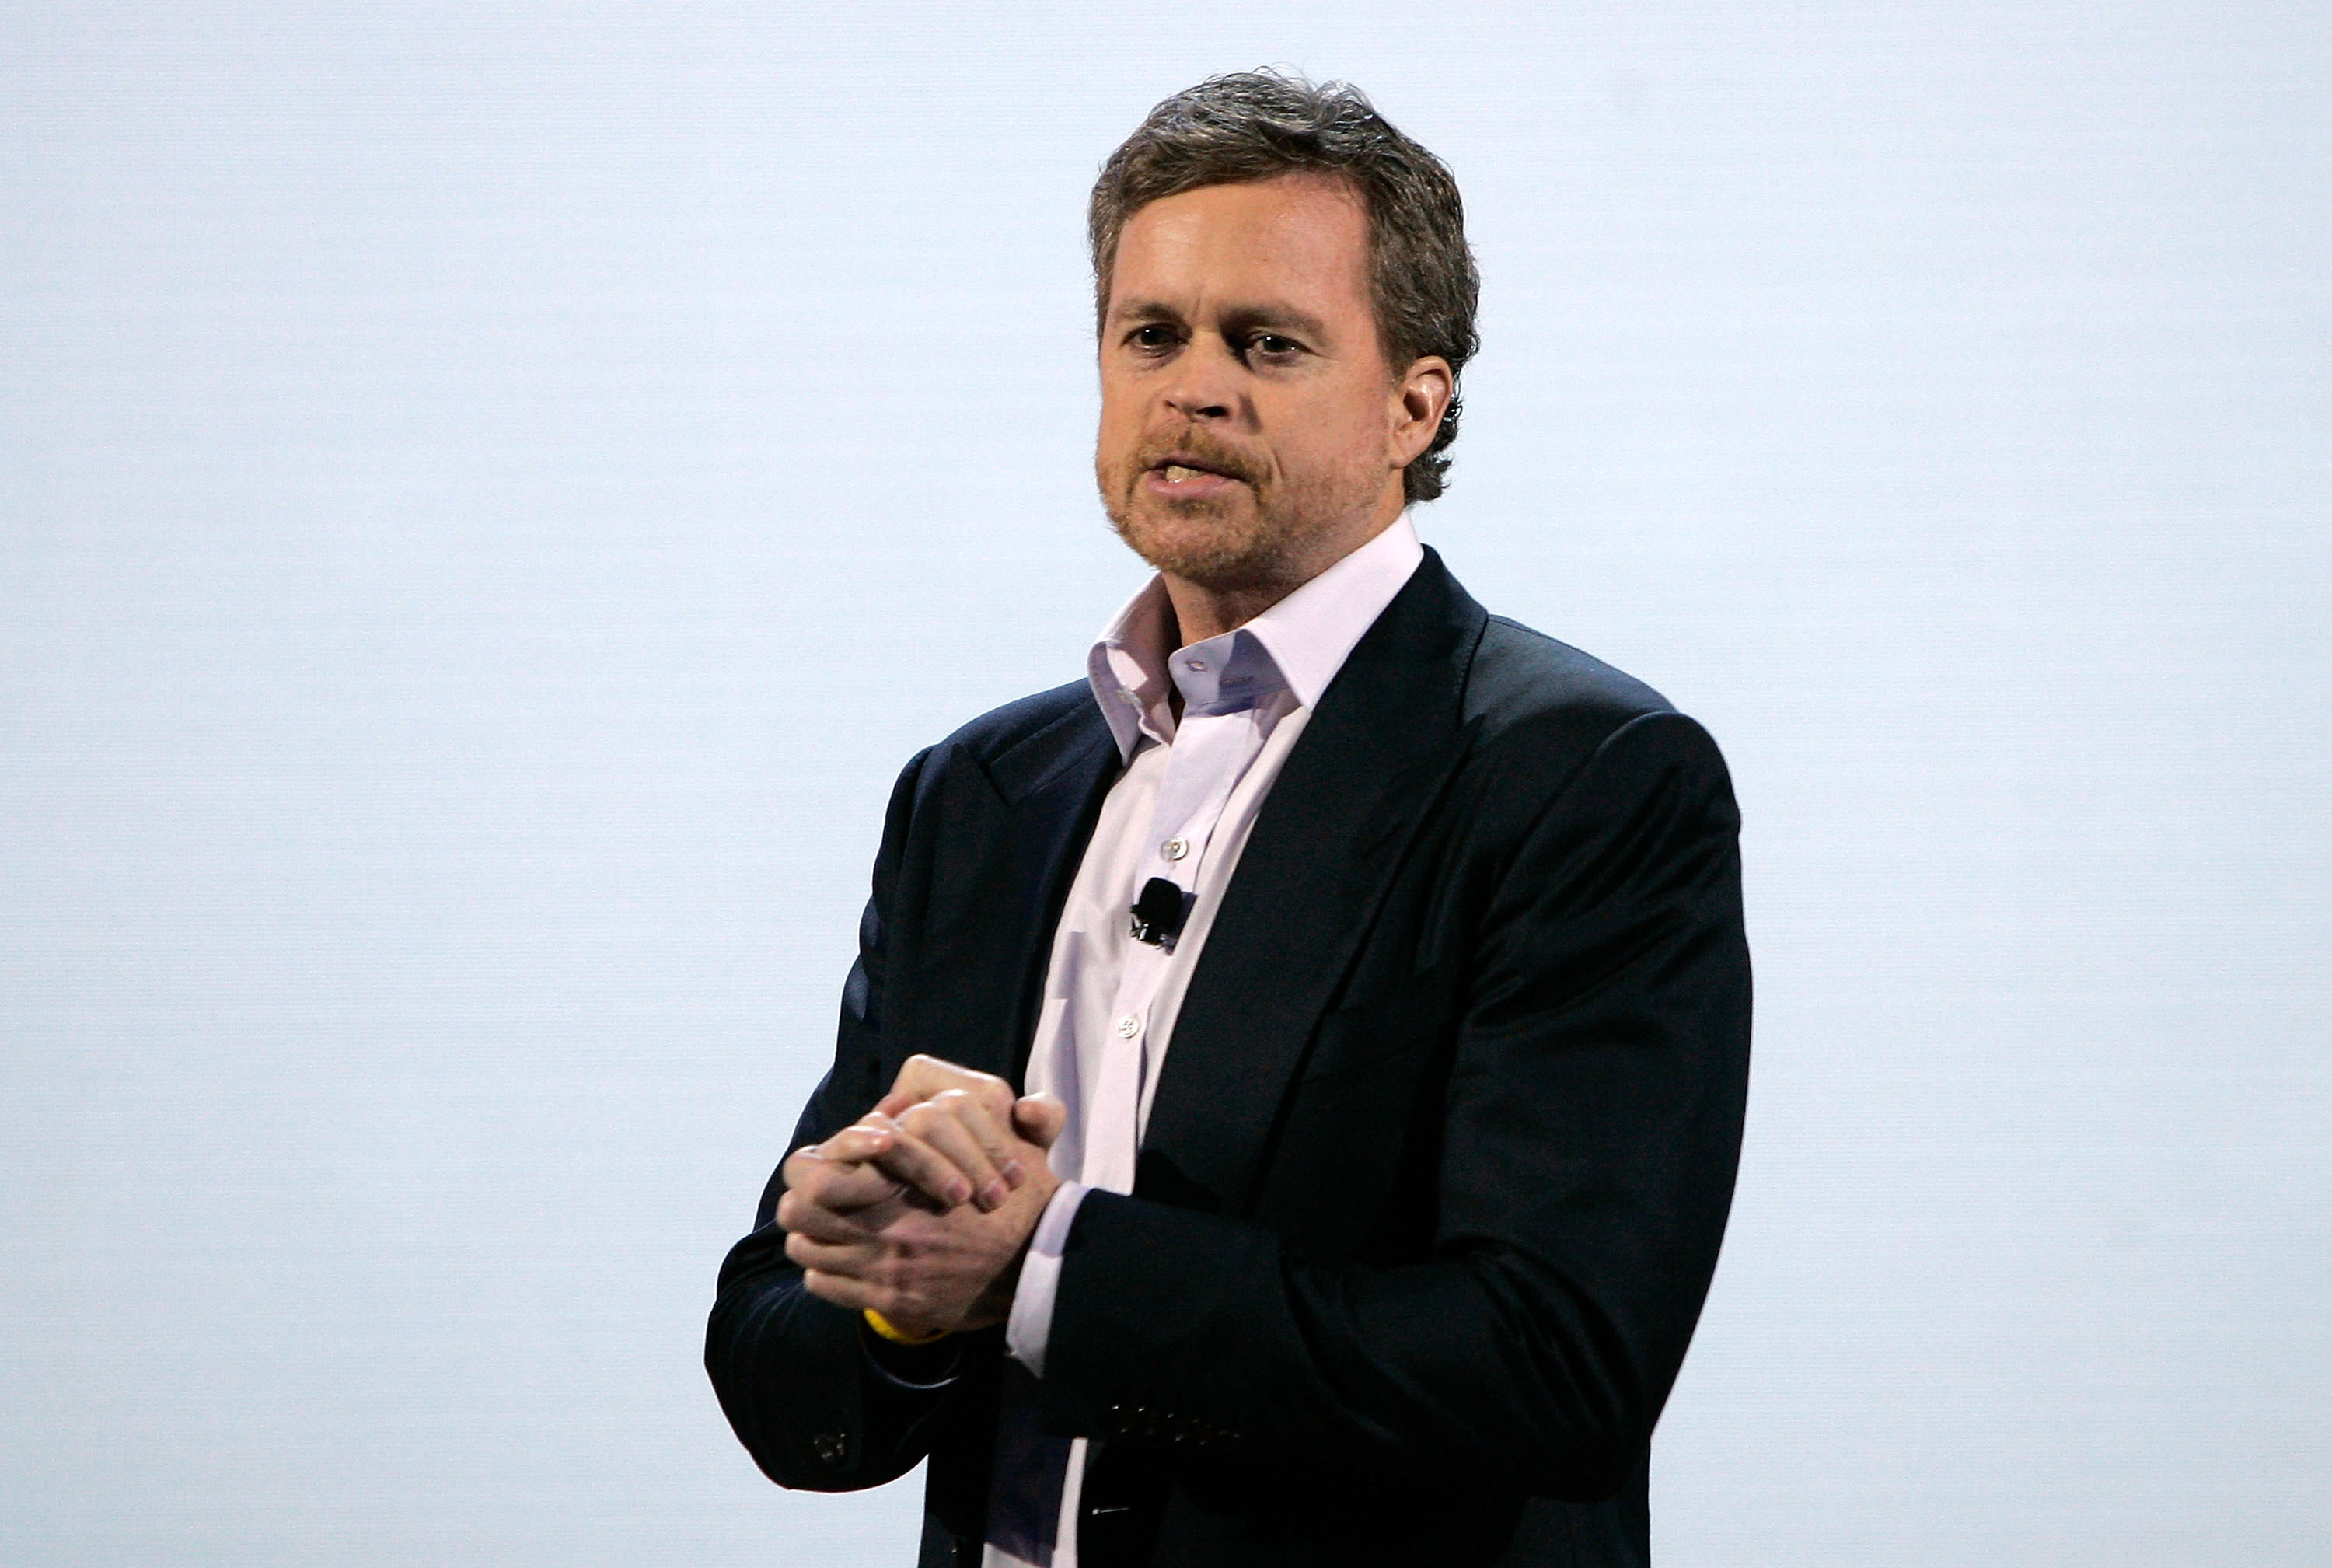 Mark Parker speaks as Nike introduces new basketball and training technology in New York City on Feb. 22, 2012.